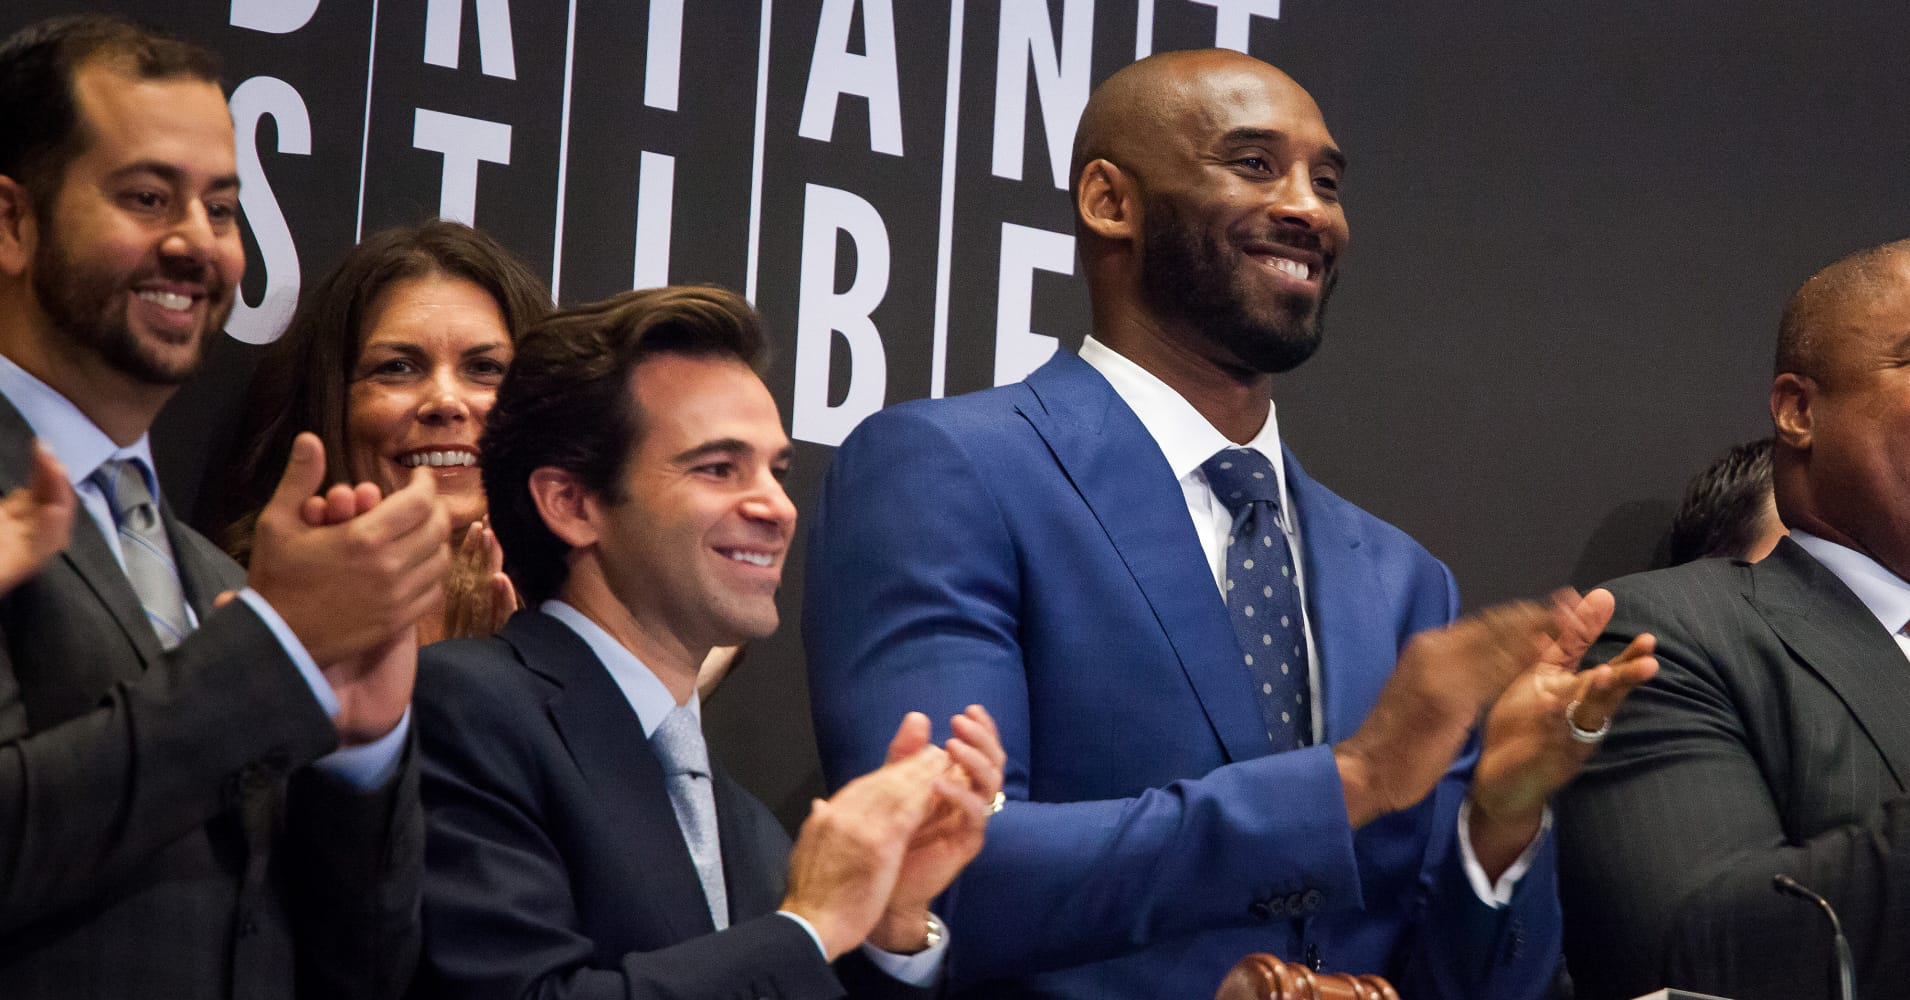 Investor Jeff Stibel, center, and Kobe Bryant, former National Basketball Association player, right, applaud while ringing the opening bell after unveiling their venture capital fund Bryant Stibel at the New York Stock Exchange.